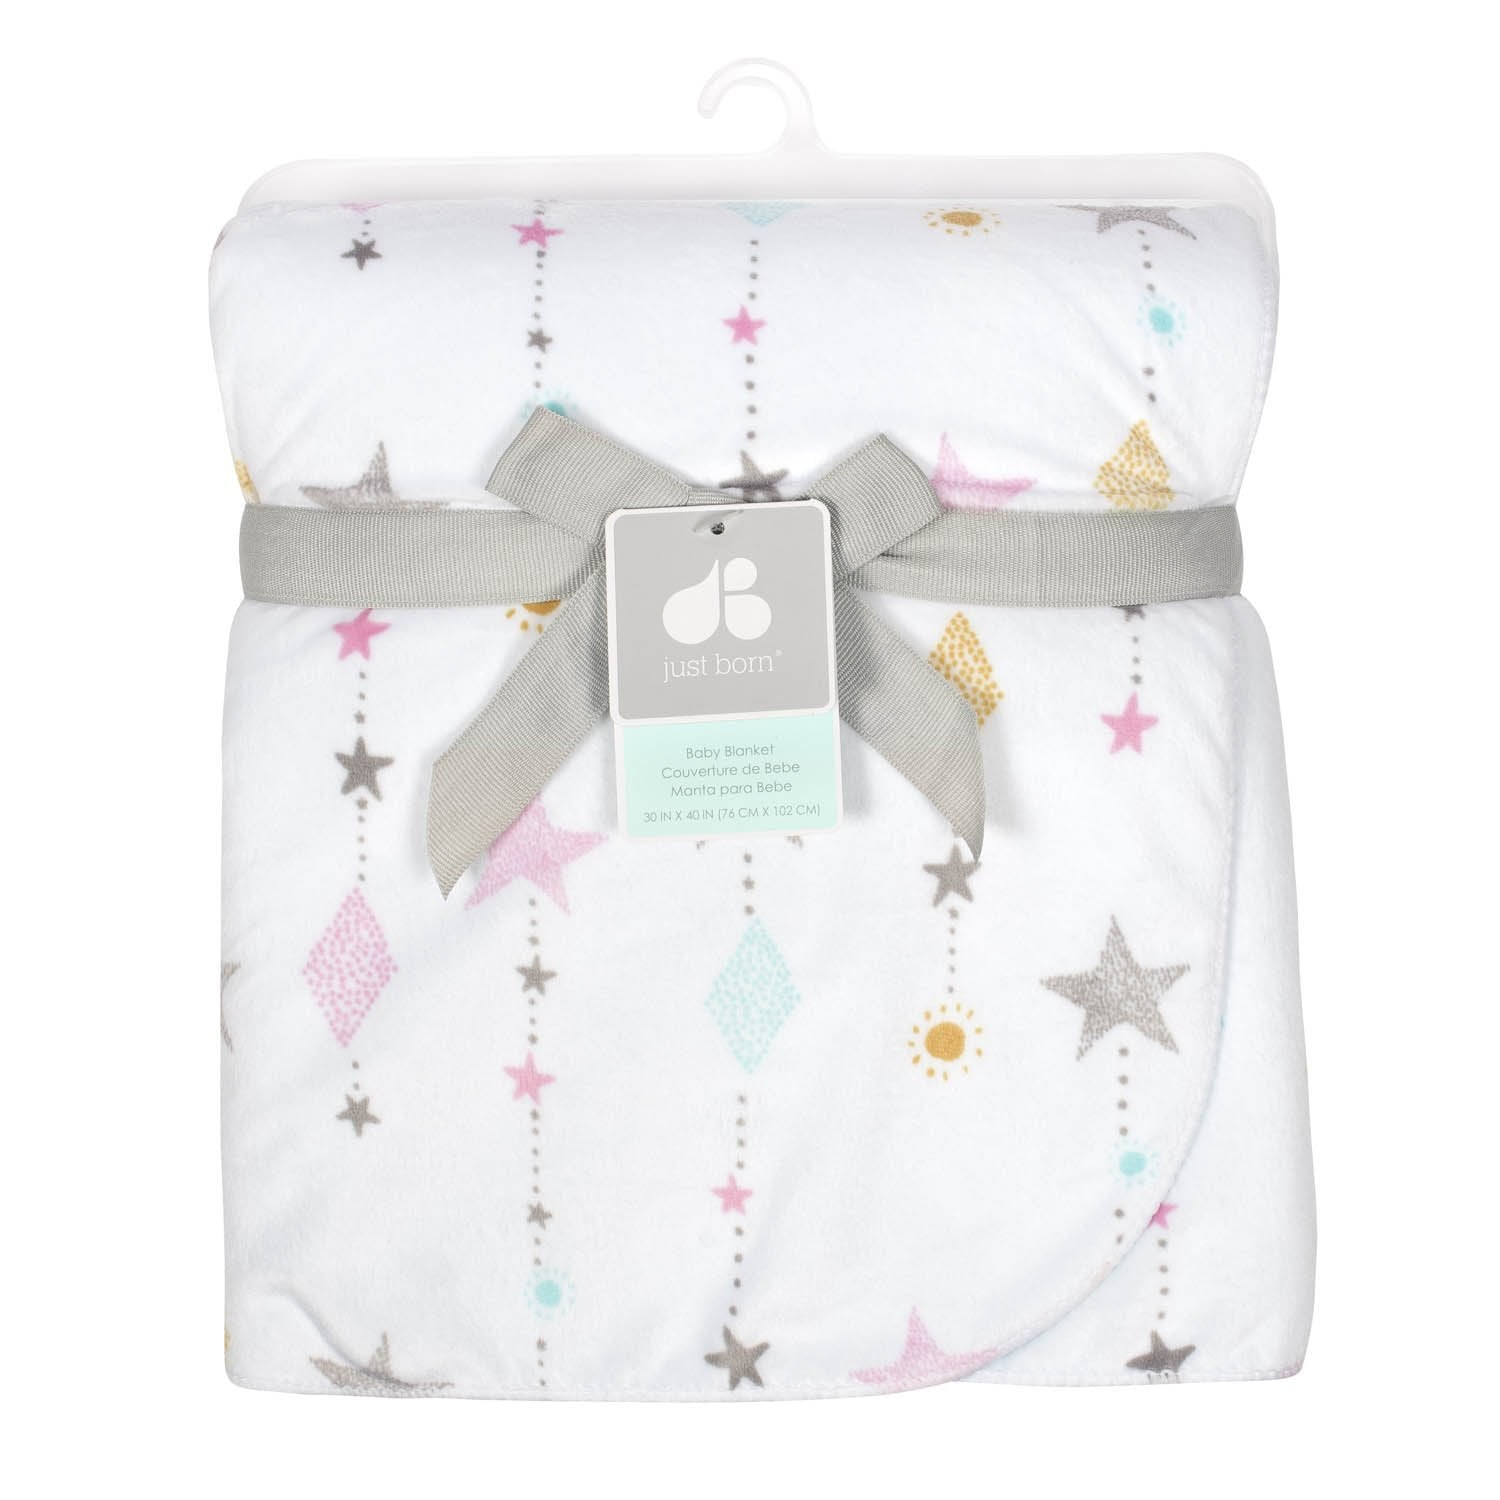 Just Born One World Collection Plush Blanket - Love & Sugar-Gerber Childrenswear